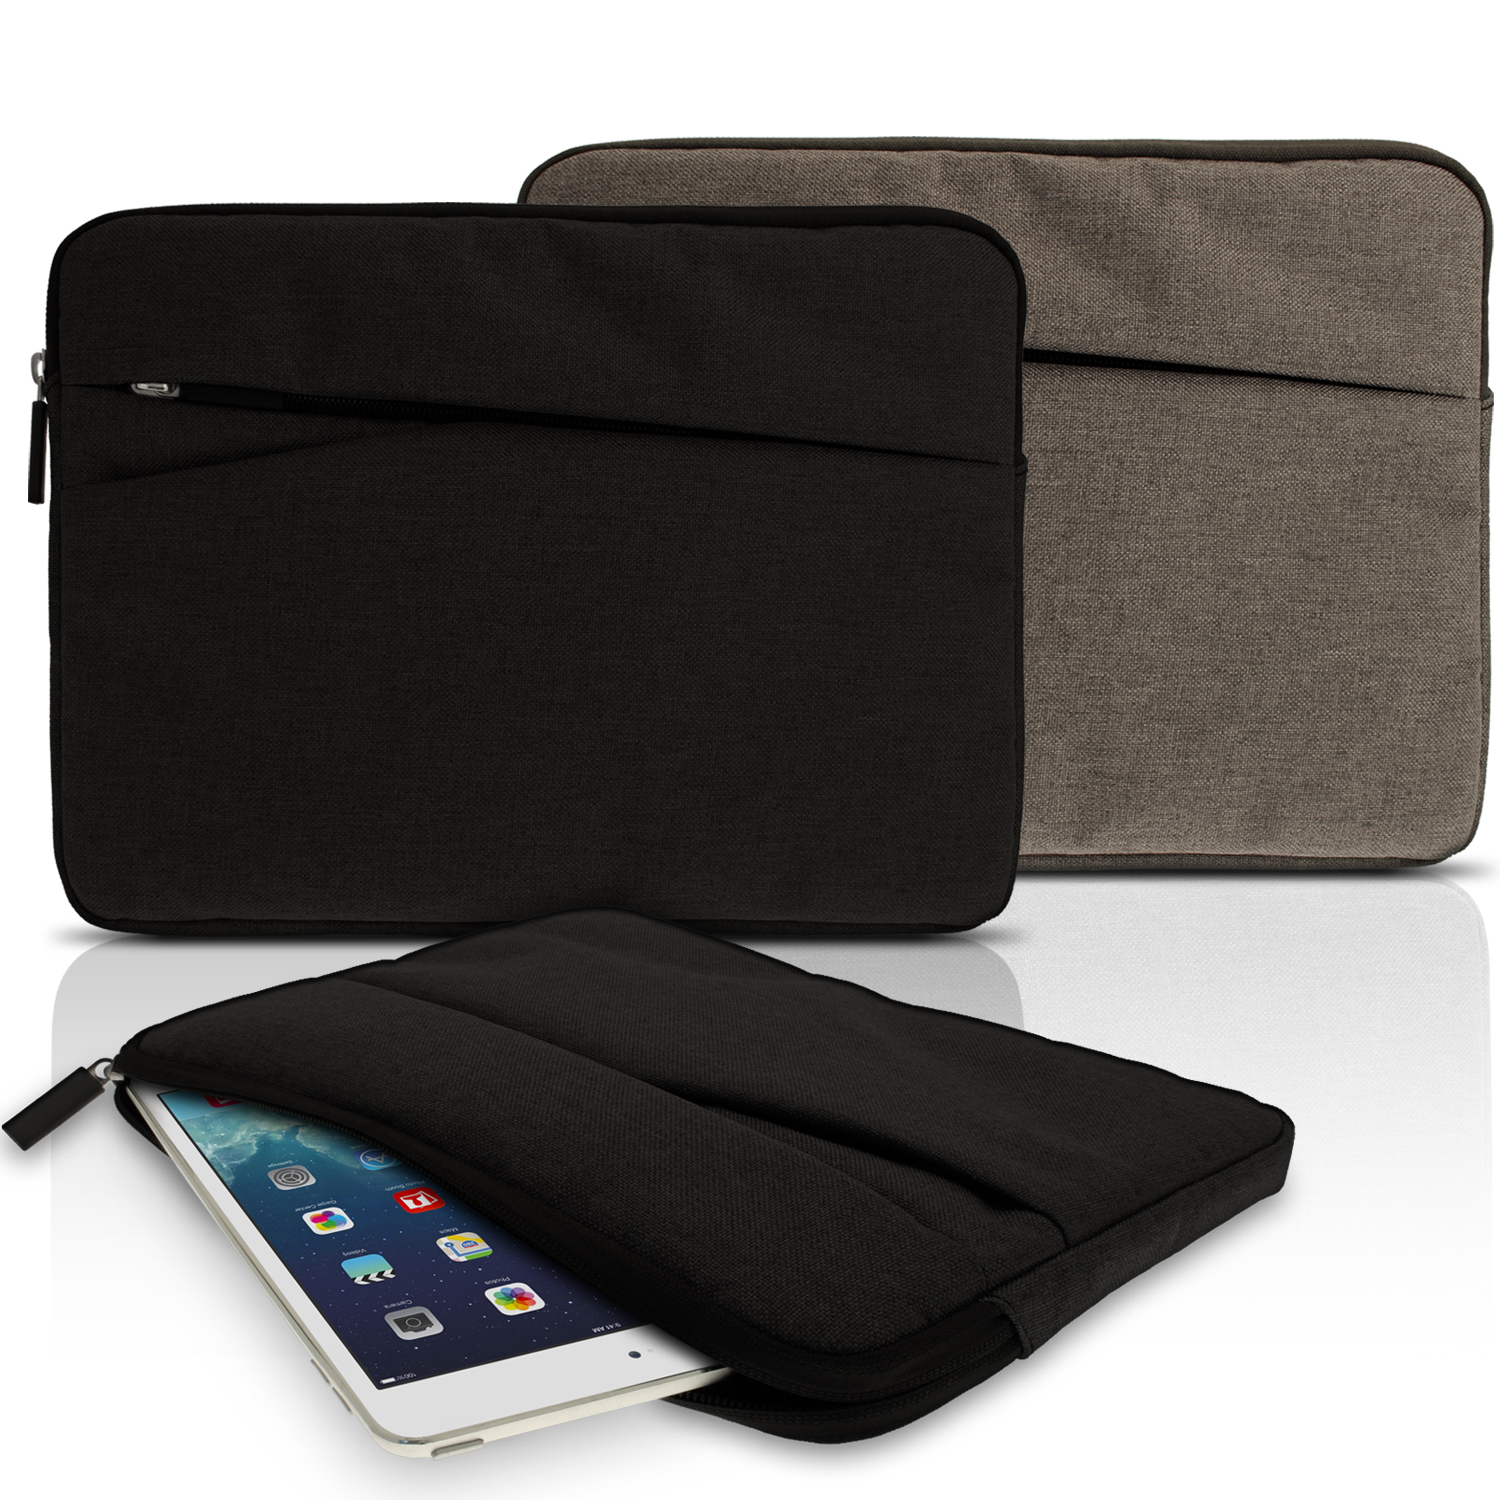 iGadgitz Canvas Fabric Sleeve Pouch Case Cover for 10.1 Inch Tablets (Apple iPad Acer Asus LG Pad Samsung Sony etc)